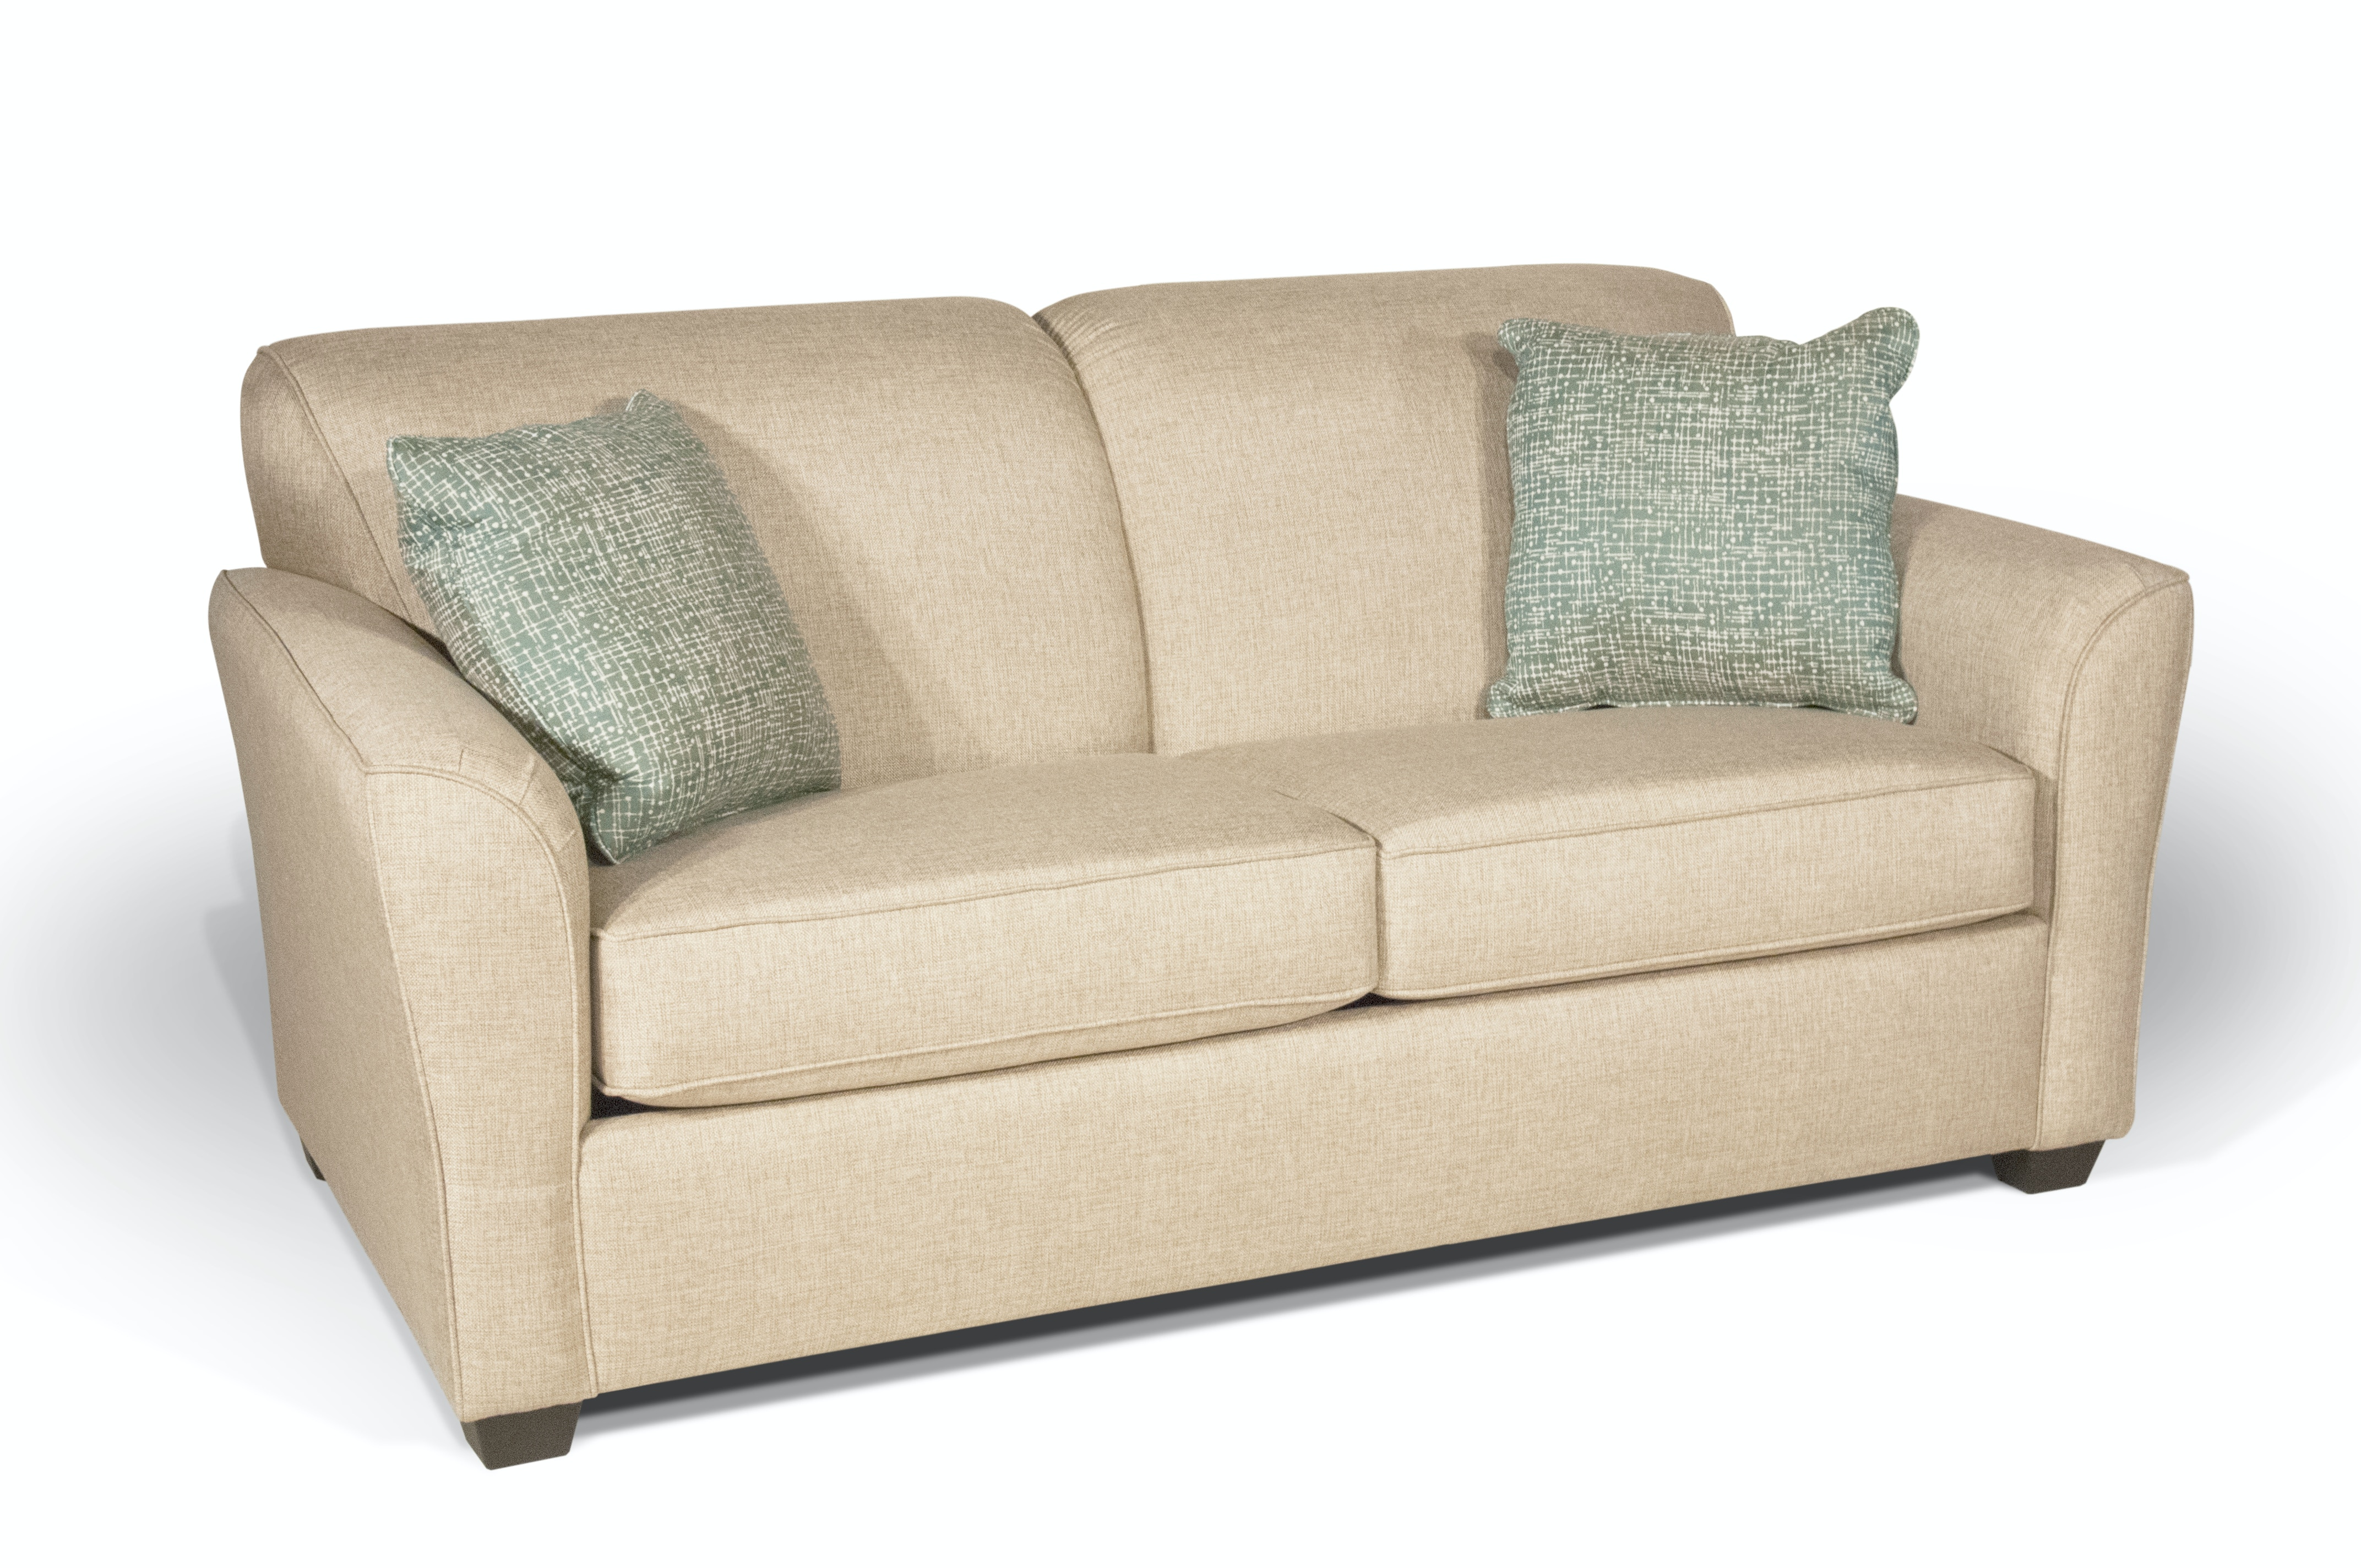 Calyx Full Sleeper Sofa